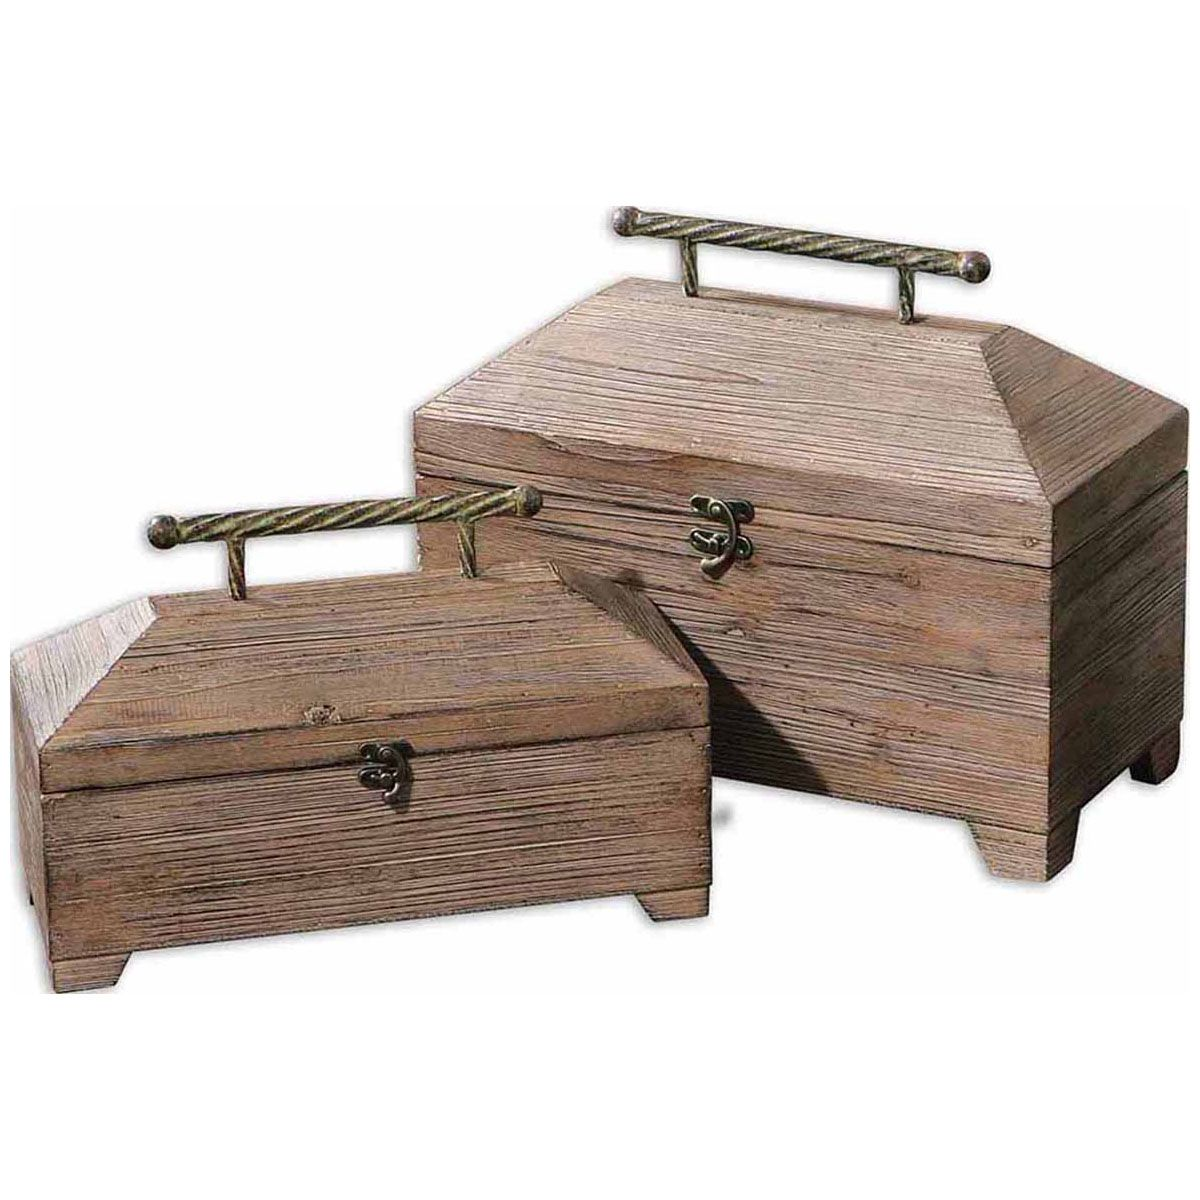 Uttermost Tadao Natural Wood Boxes, Set of 2 19653